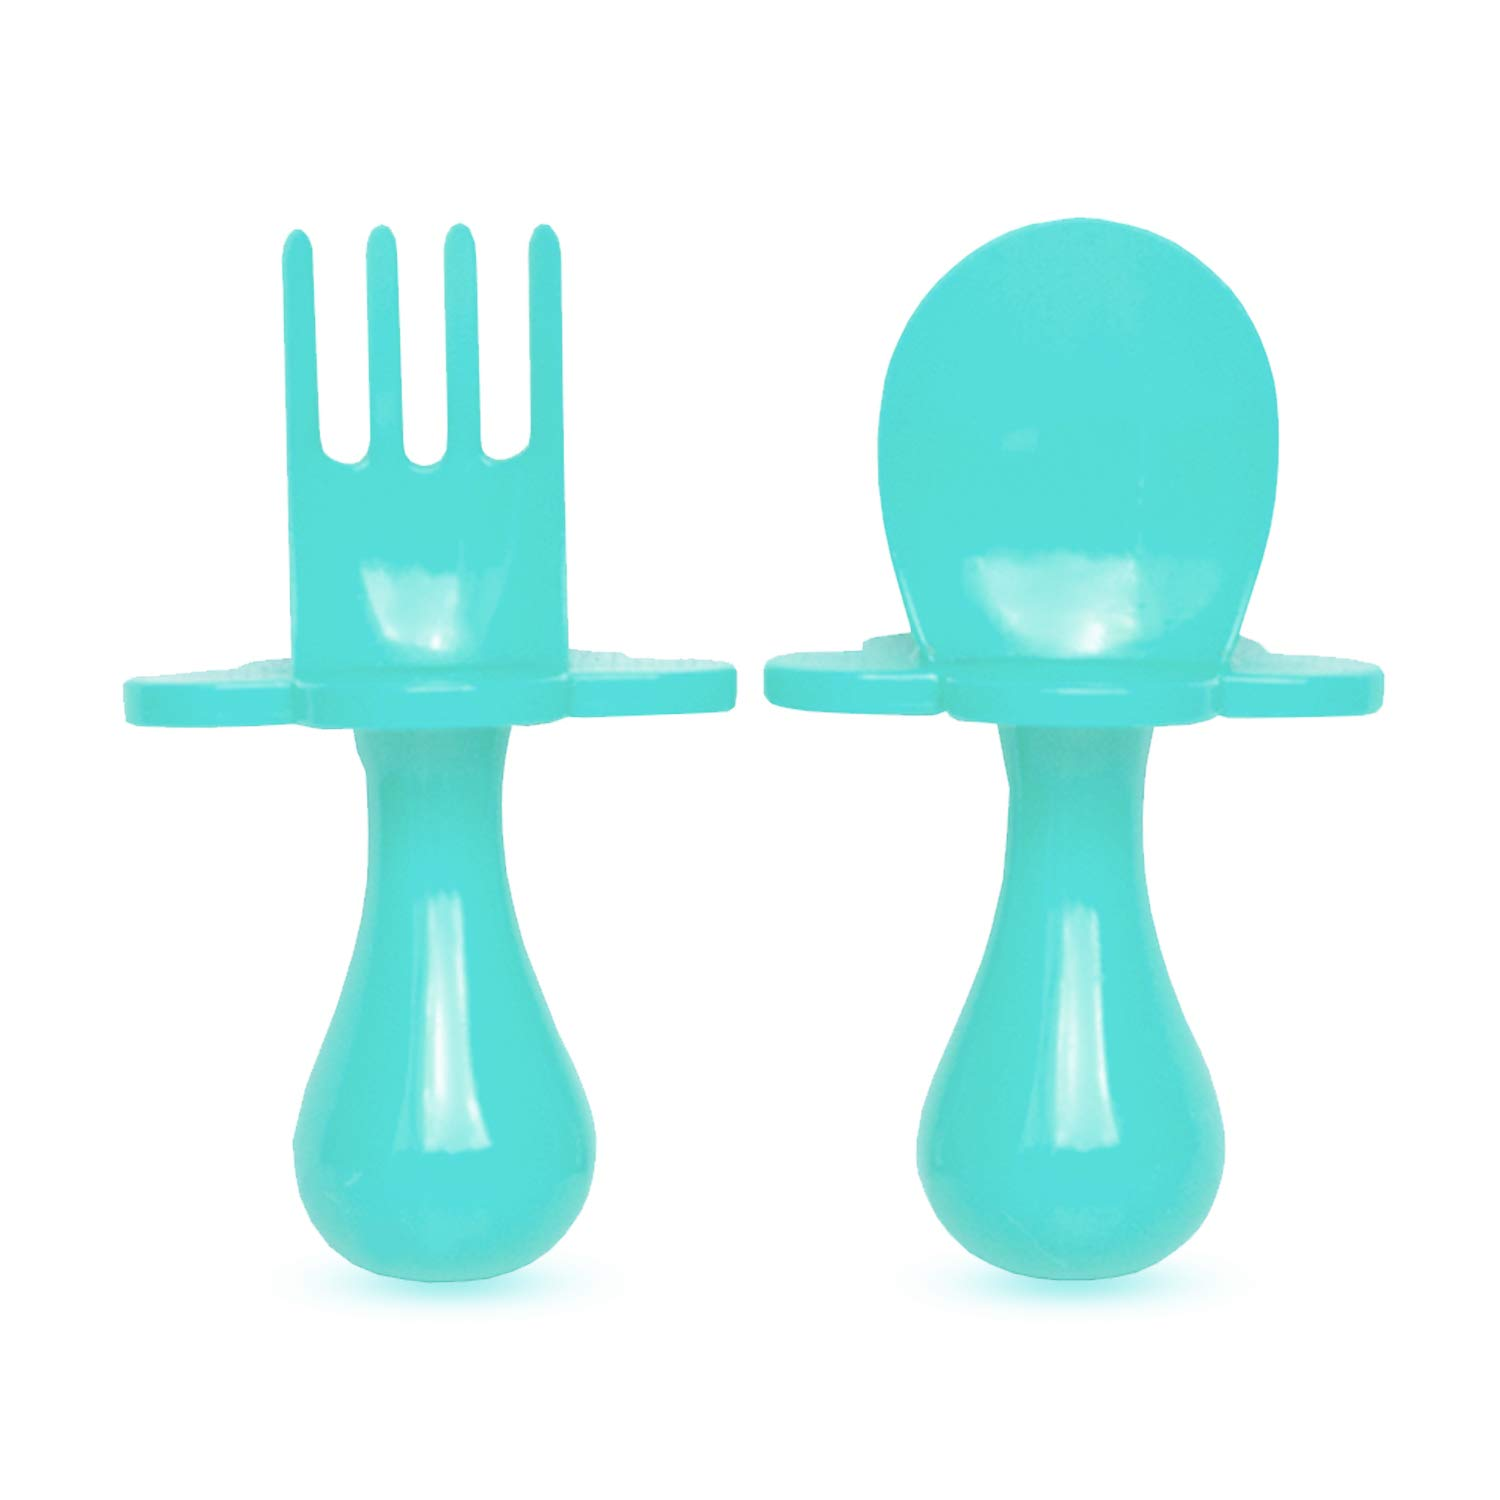 GRABEASE First Self Feed Baby Utensils with a Togo Pouch - Anti-Choke, BPA-Free Baby Spoon and Fork Toddler Utensils - Toddler Silverware for Baby Led Weaning Ages 6 Months+, Teal by grabease